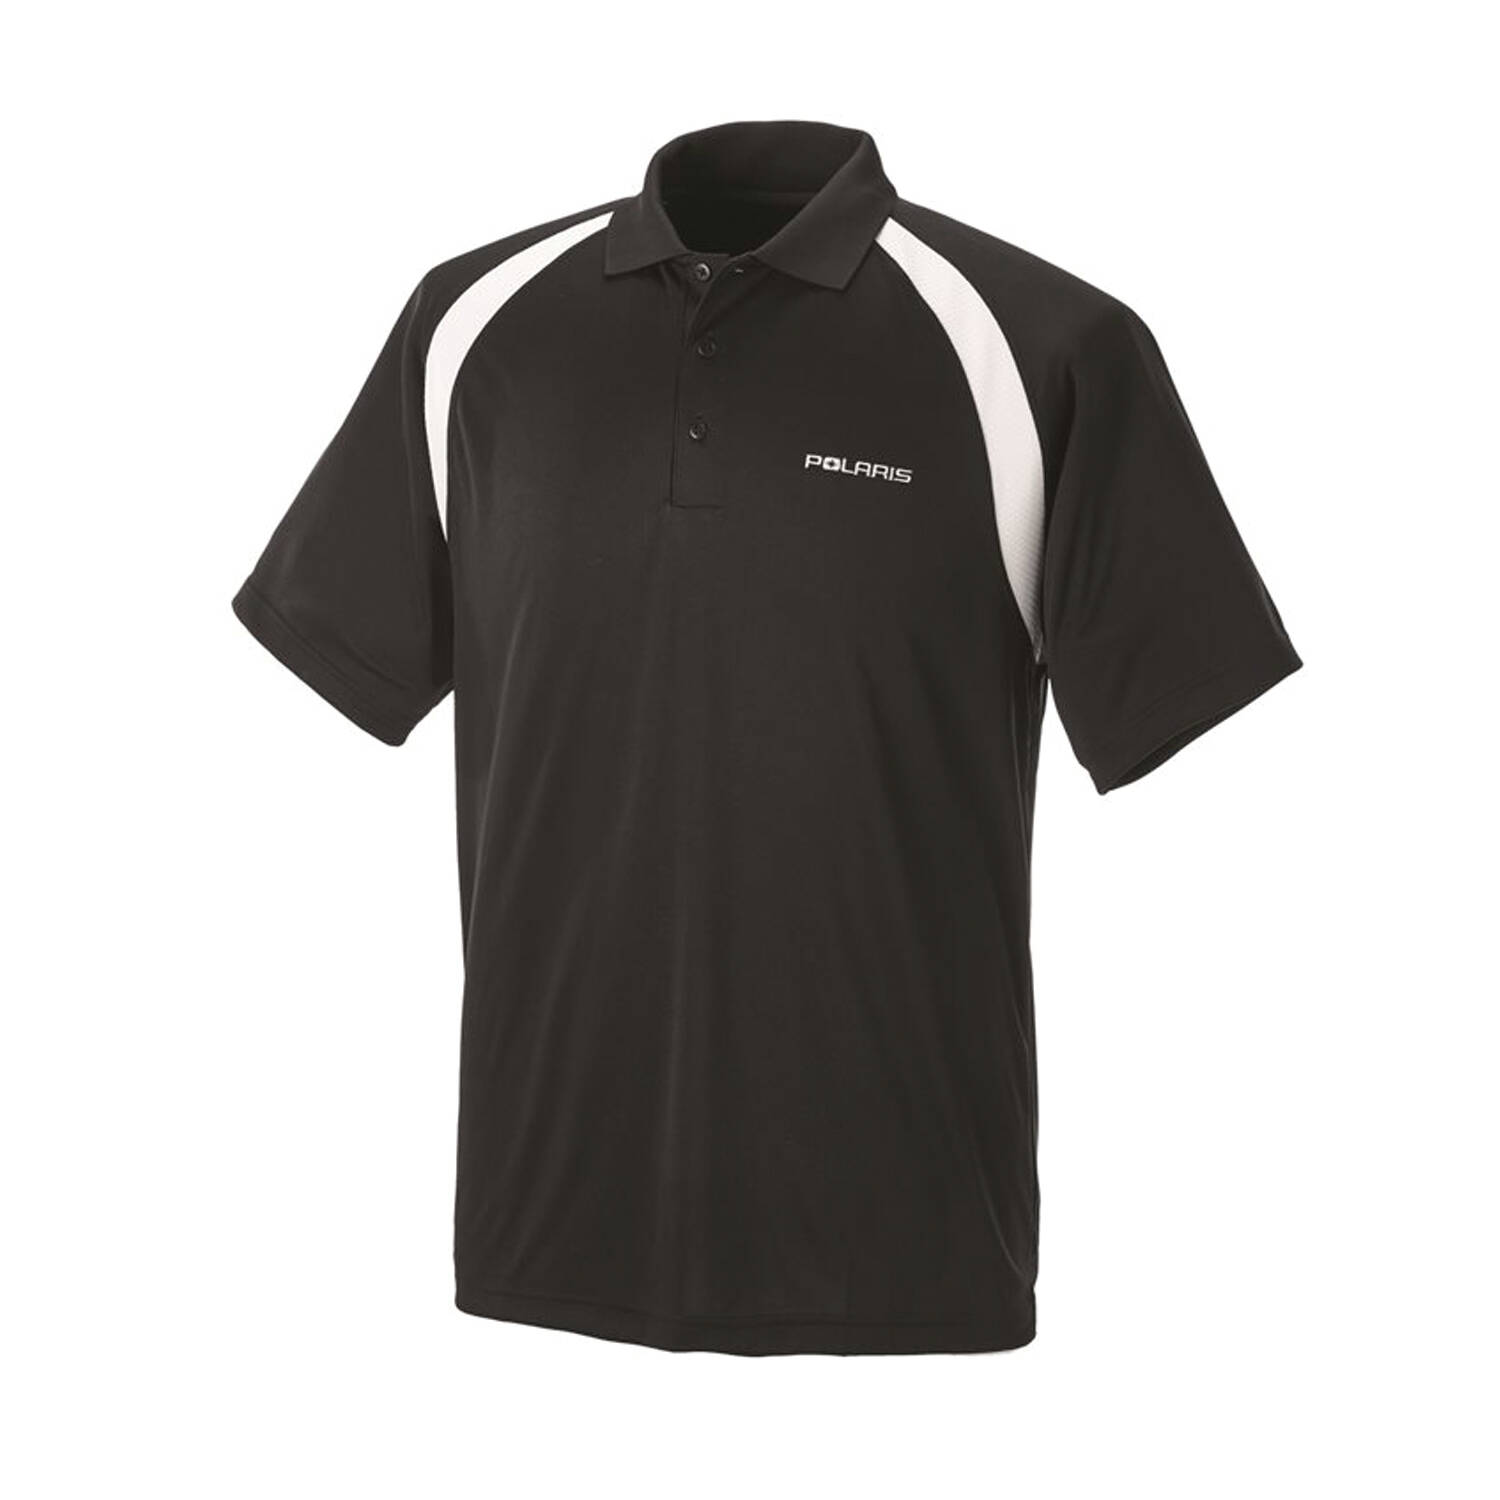 Men's Short-Sleeve Classic Core Polo with White Polaris® Logo, Black